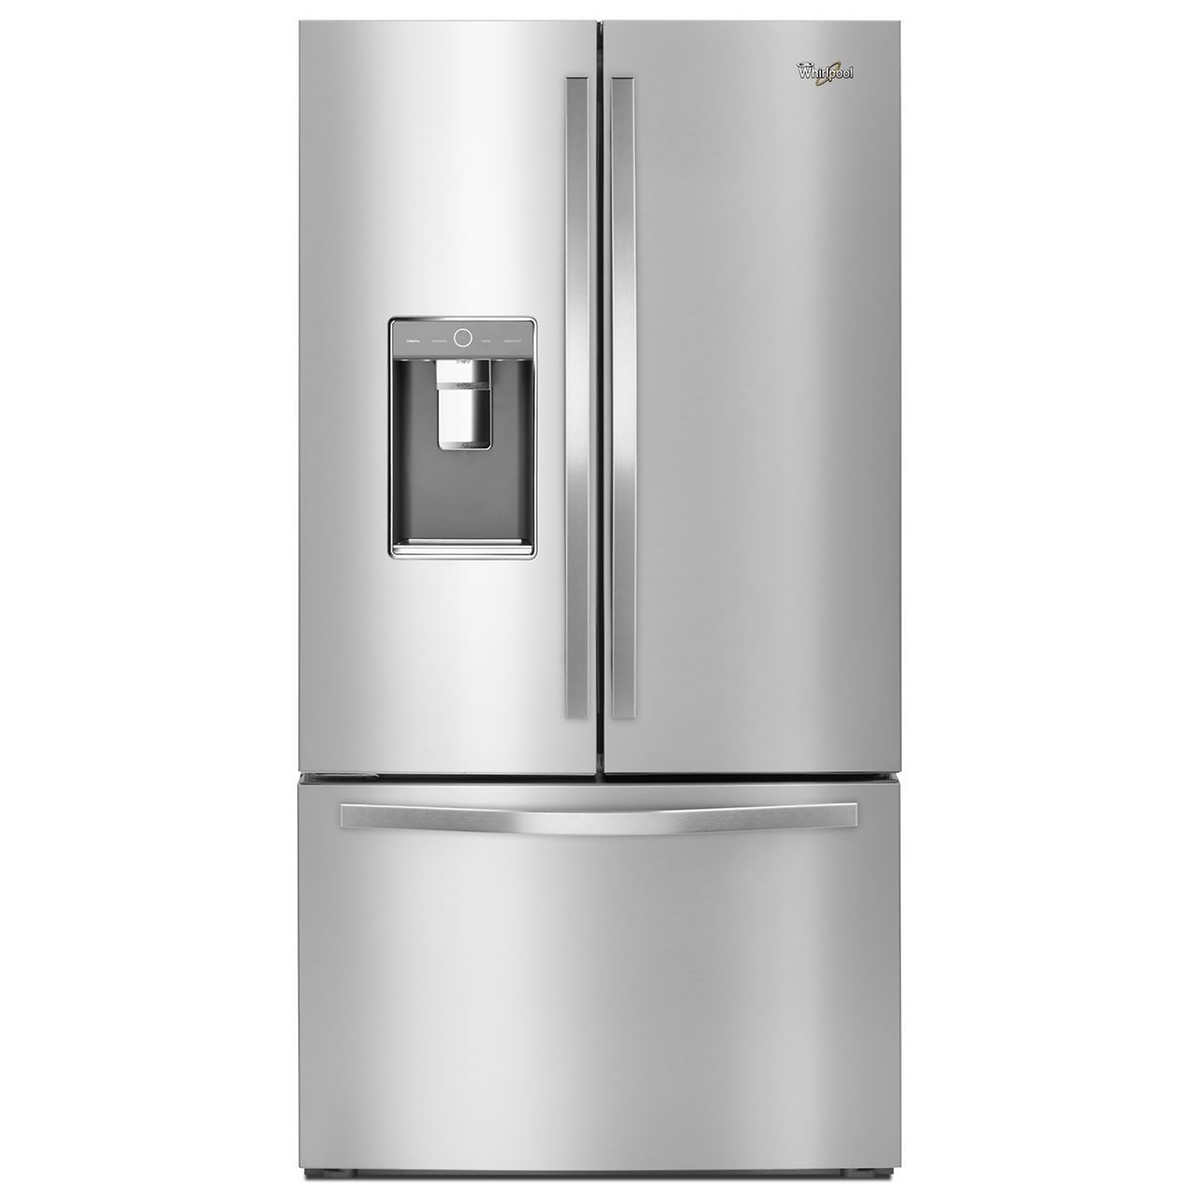 What companies offer appliance haul away?